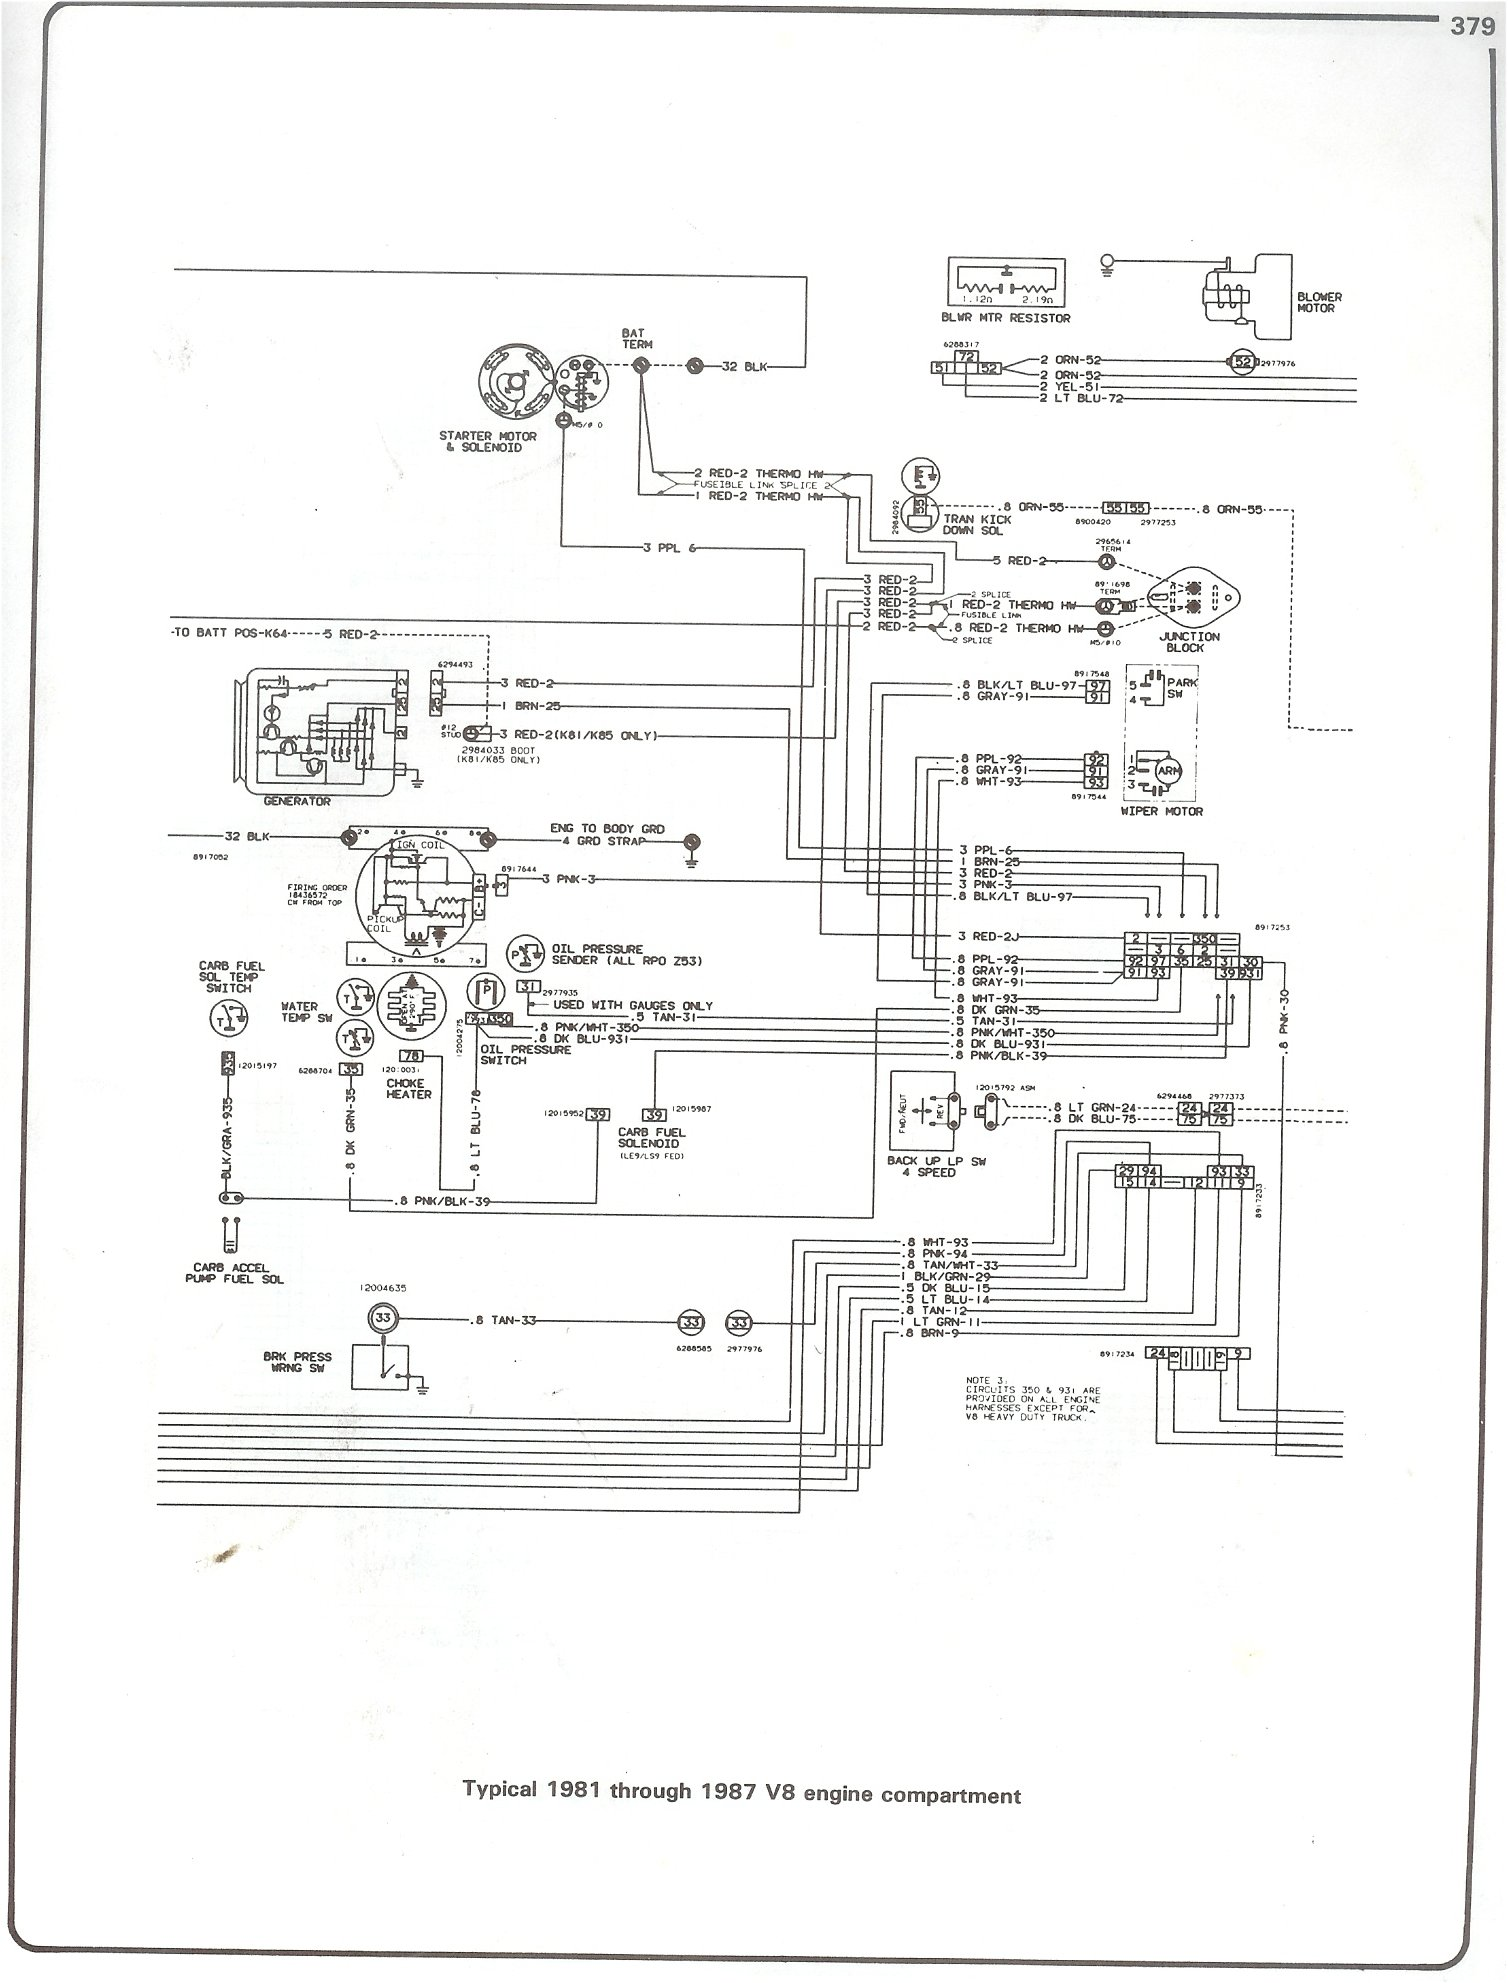 1986 Gmc Wiring Diagram Experts Of Stereo 86 Suburban Detailed Schematics Rh Lelandlutheran Com Truck Electrical Diagrams Sierra Radio